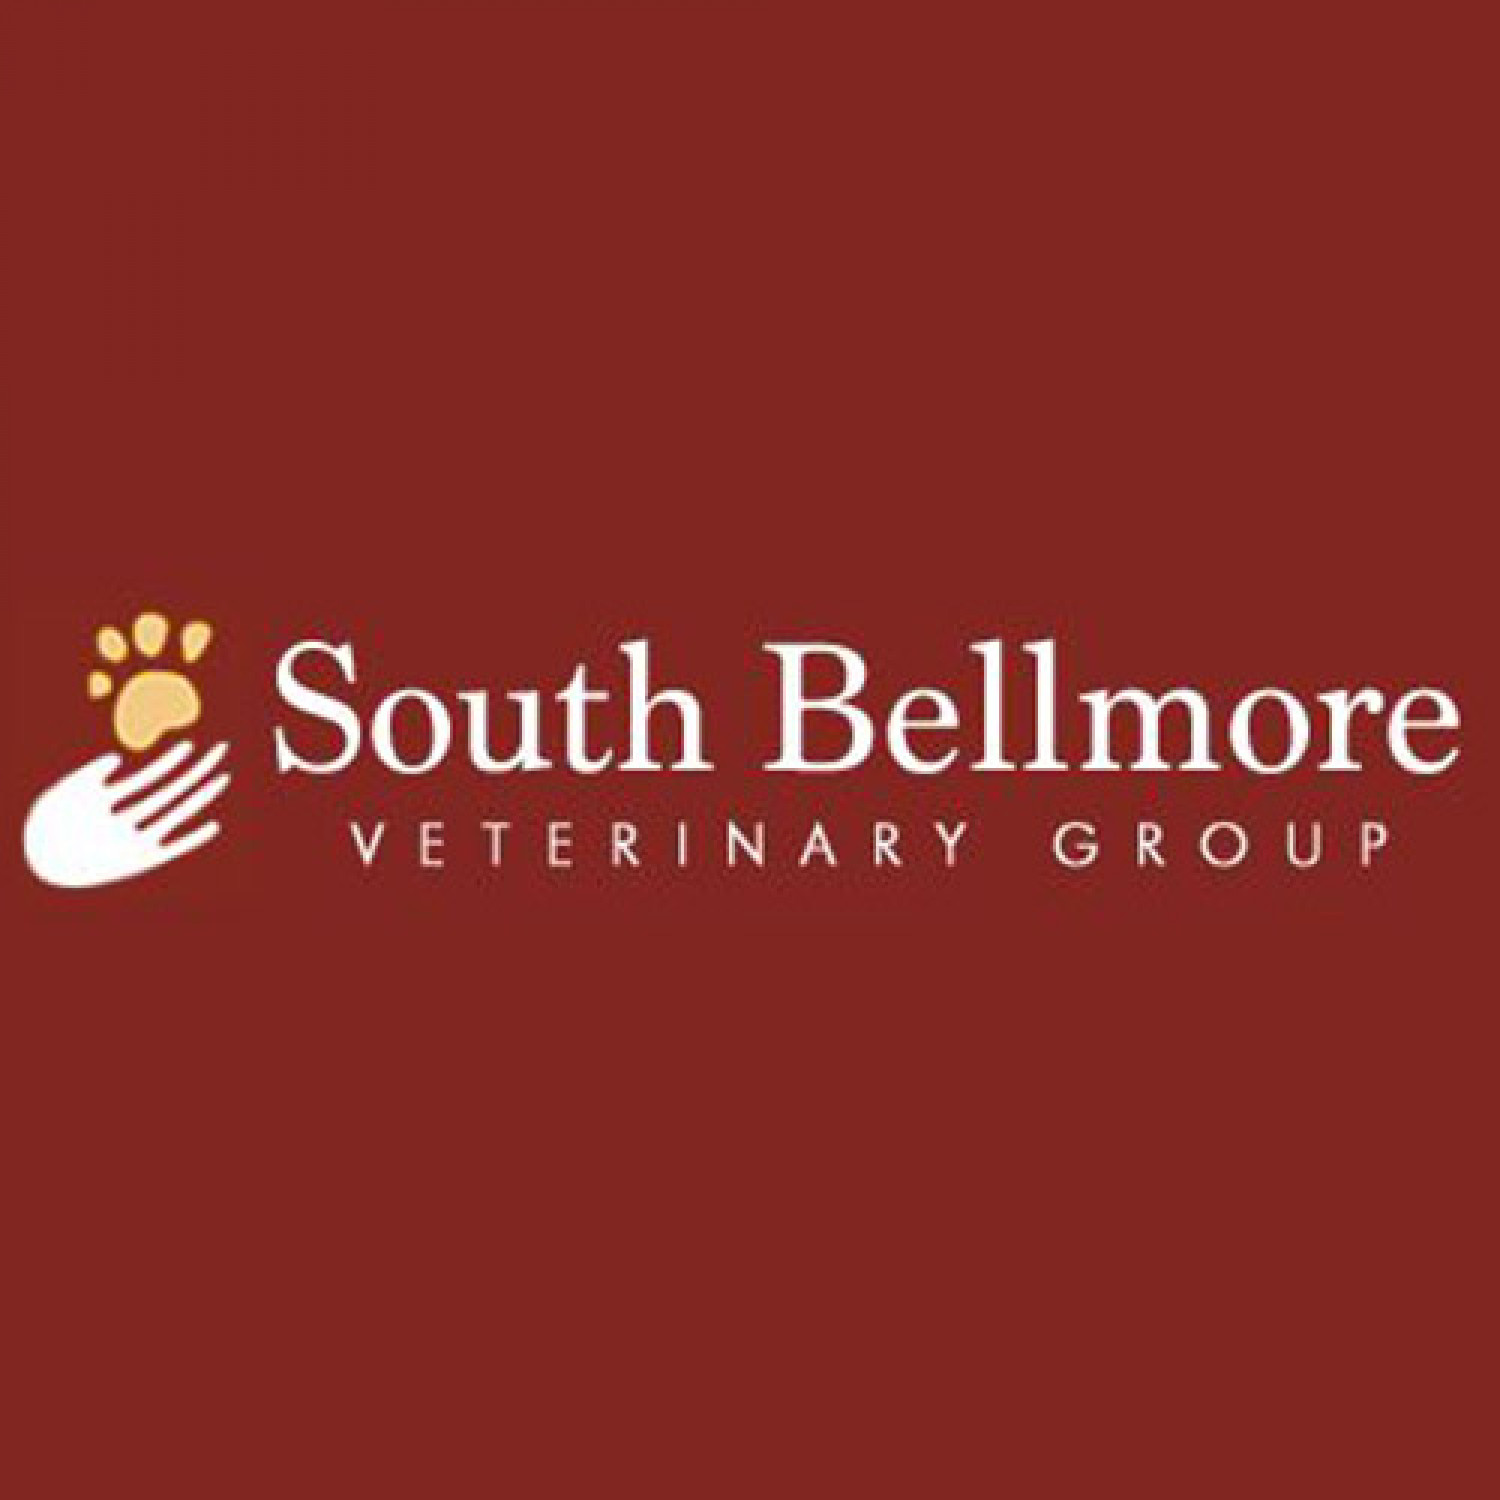 South Bellmore Veterinary Group Review: Tips for taking care of your dog when going to the park Infographic